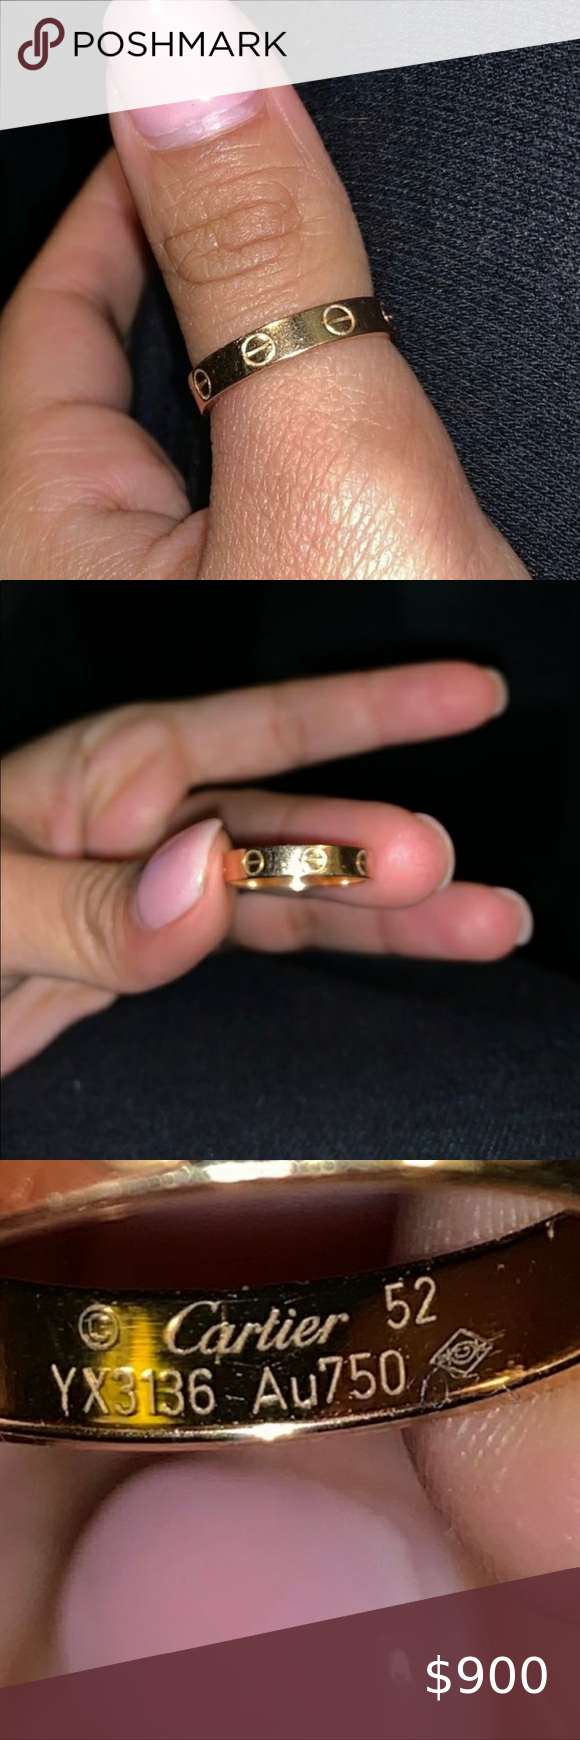 AUTHENTIC Cartier Love Ring/Wedding Band Size 6 8K Yellow